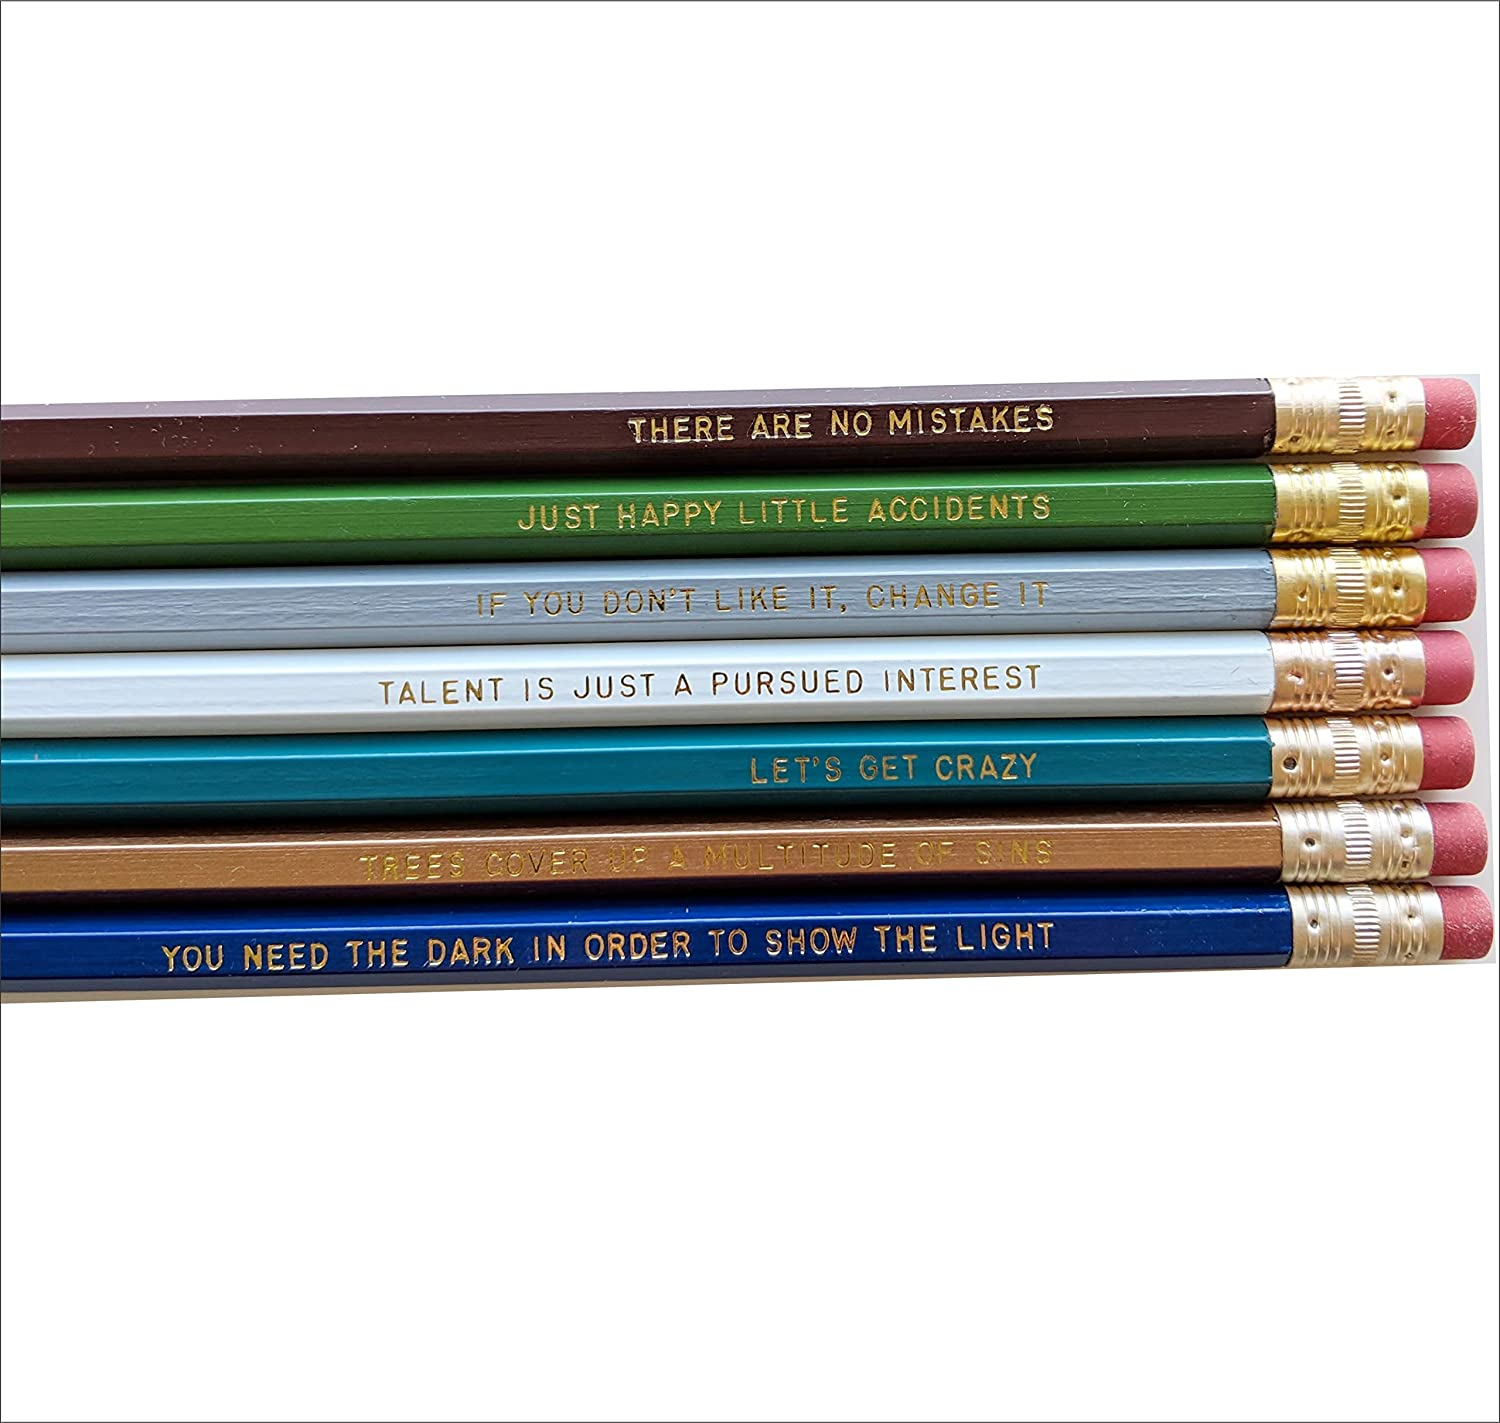 Happy Little Trees Pop Icon Artist Gift Quotes Engraved Pencil Set Gold Foil Pencil Set Engraved Pencils Back To School Funny Pencils Gift for College Student Gift